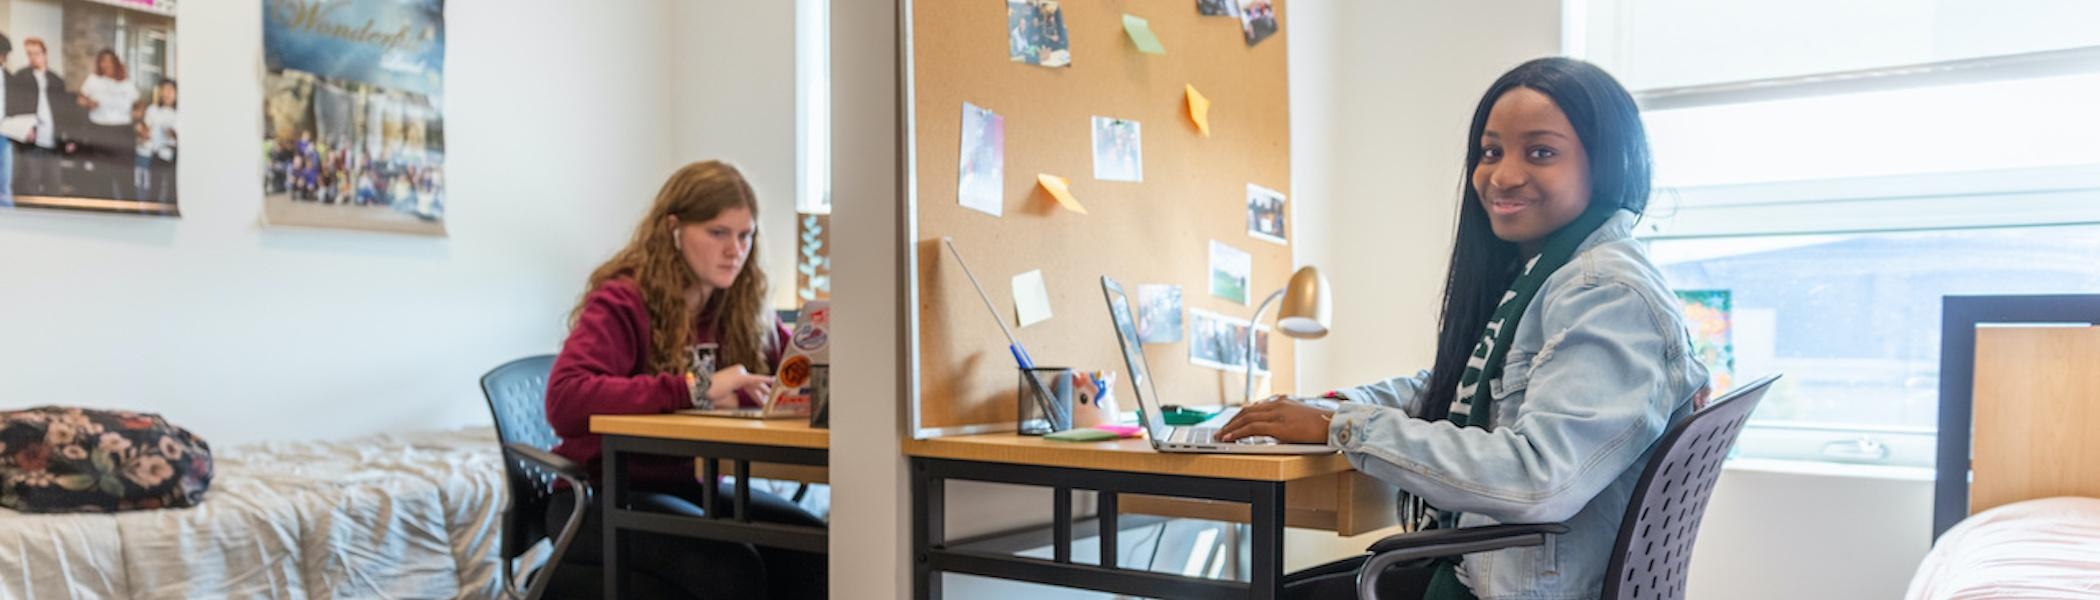 Two students studying together in their double residence room